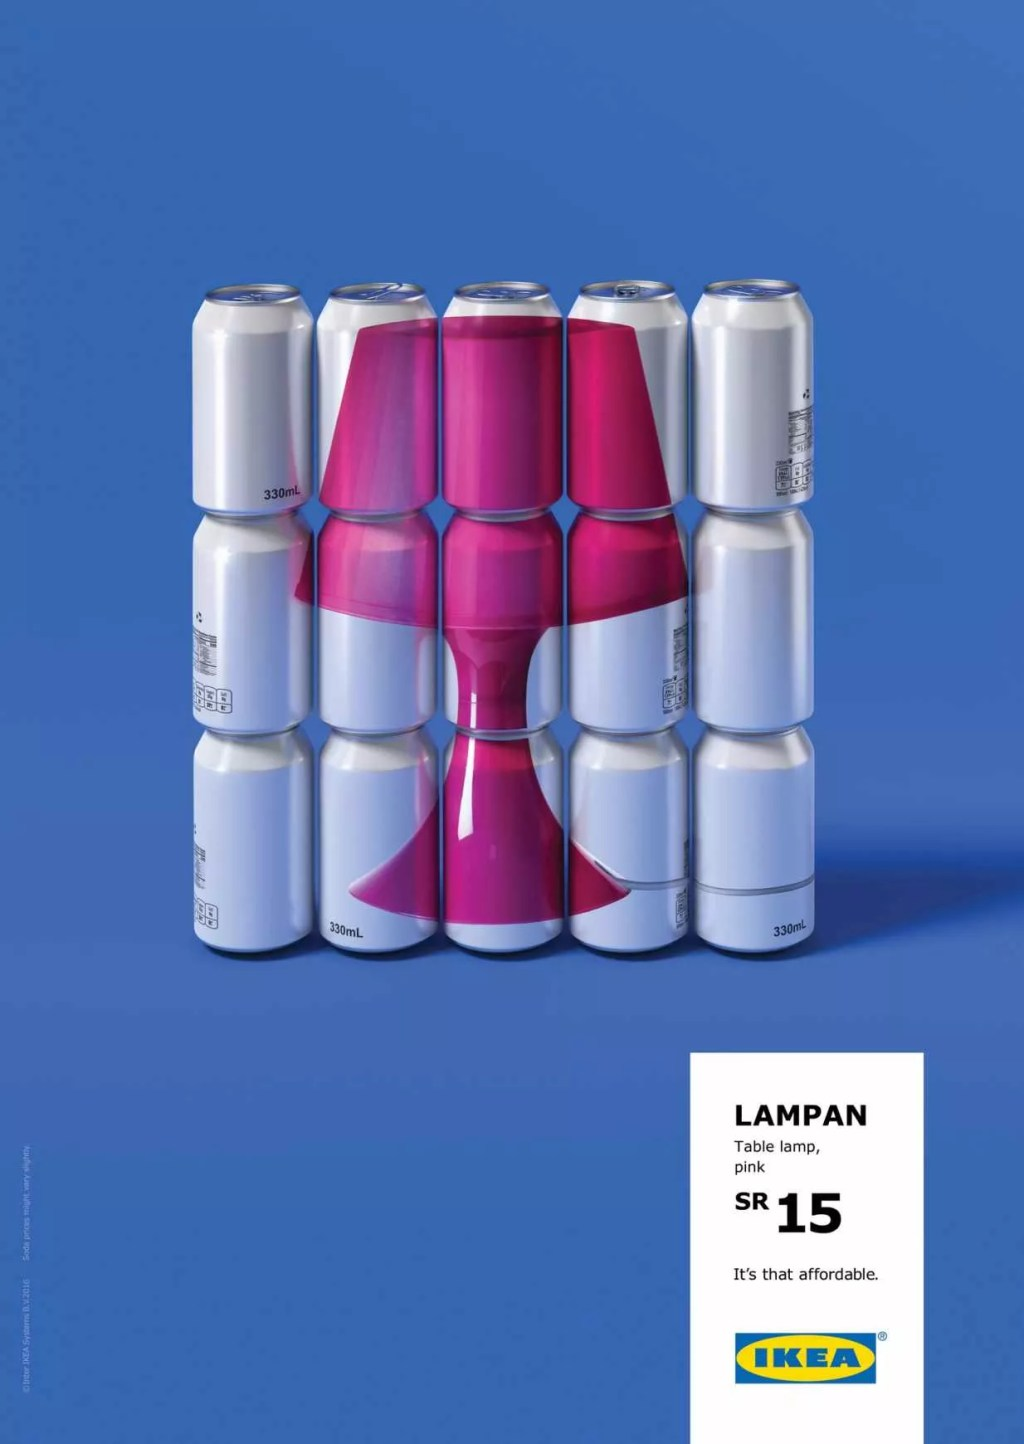 ikea-ads-clever-affordability-2